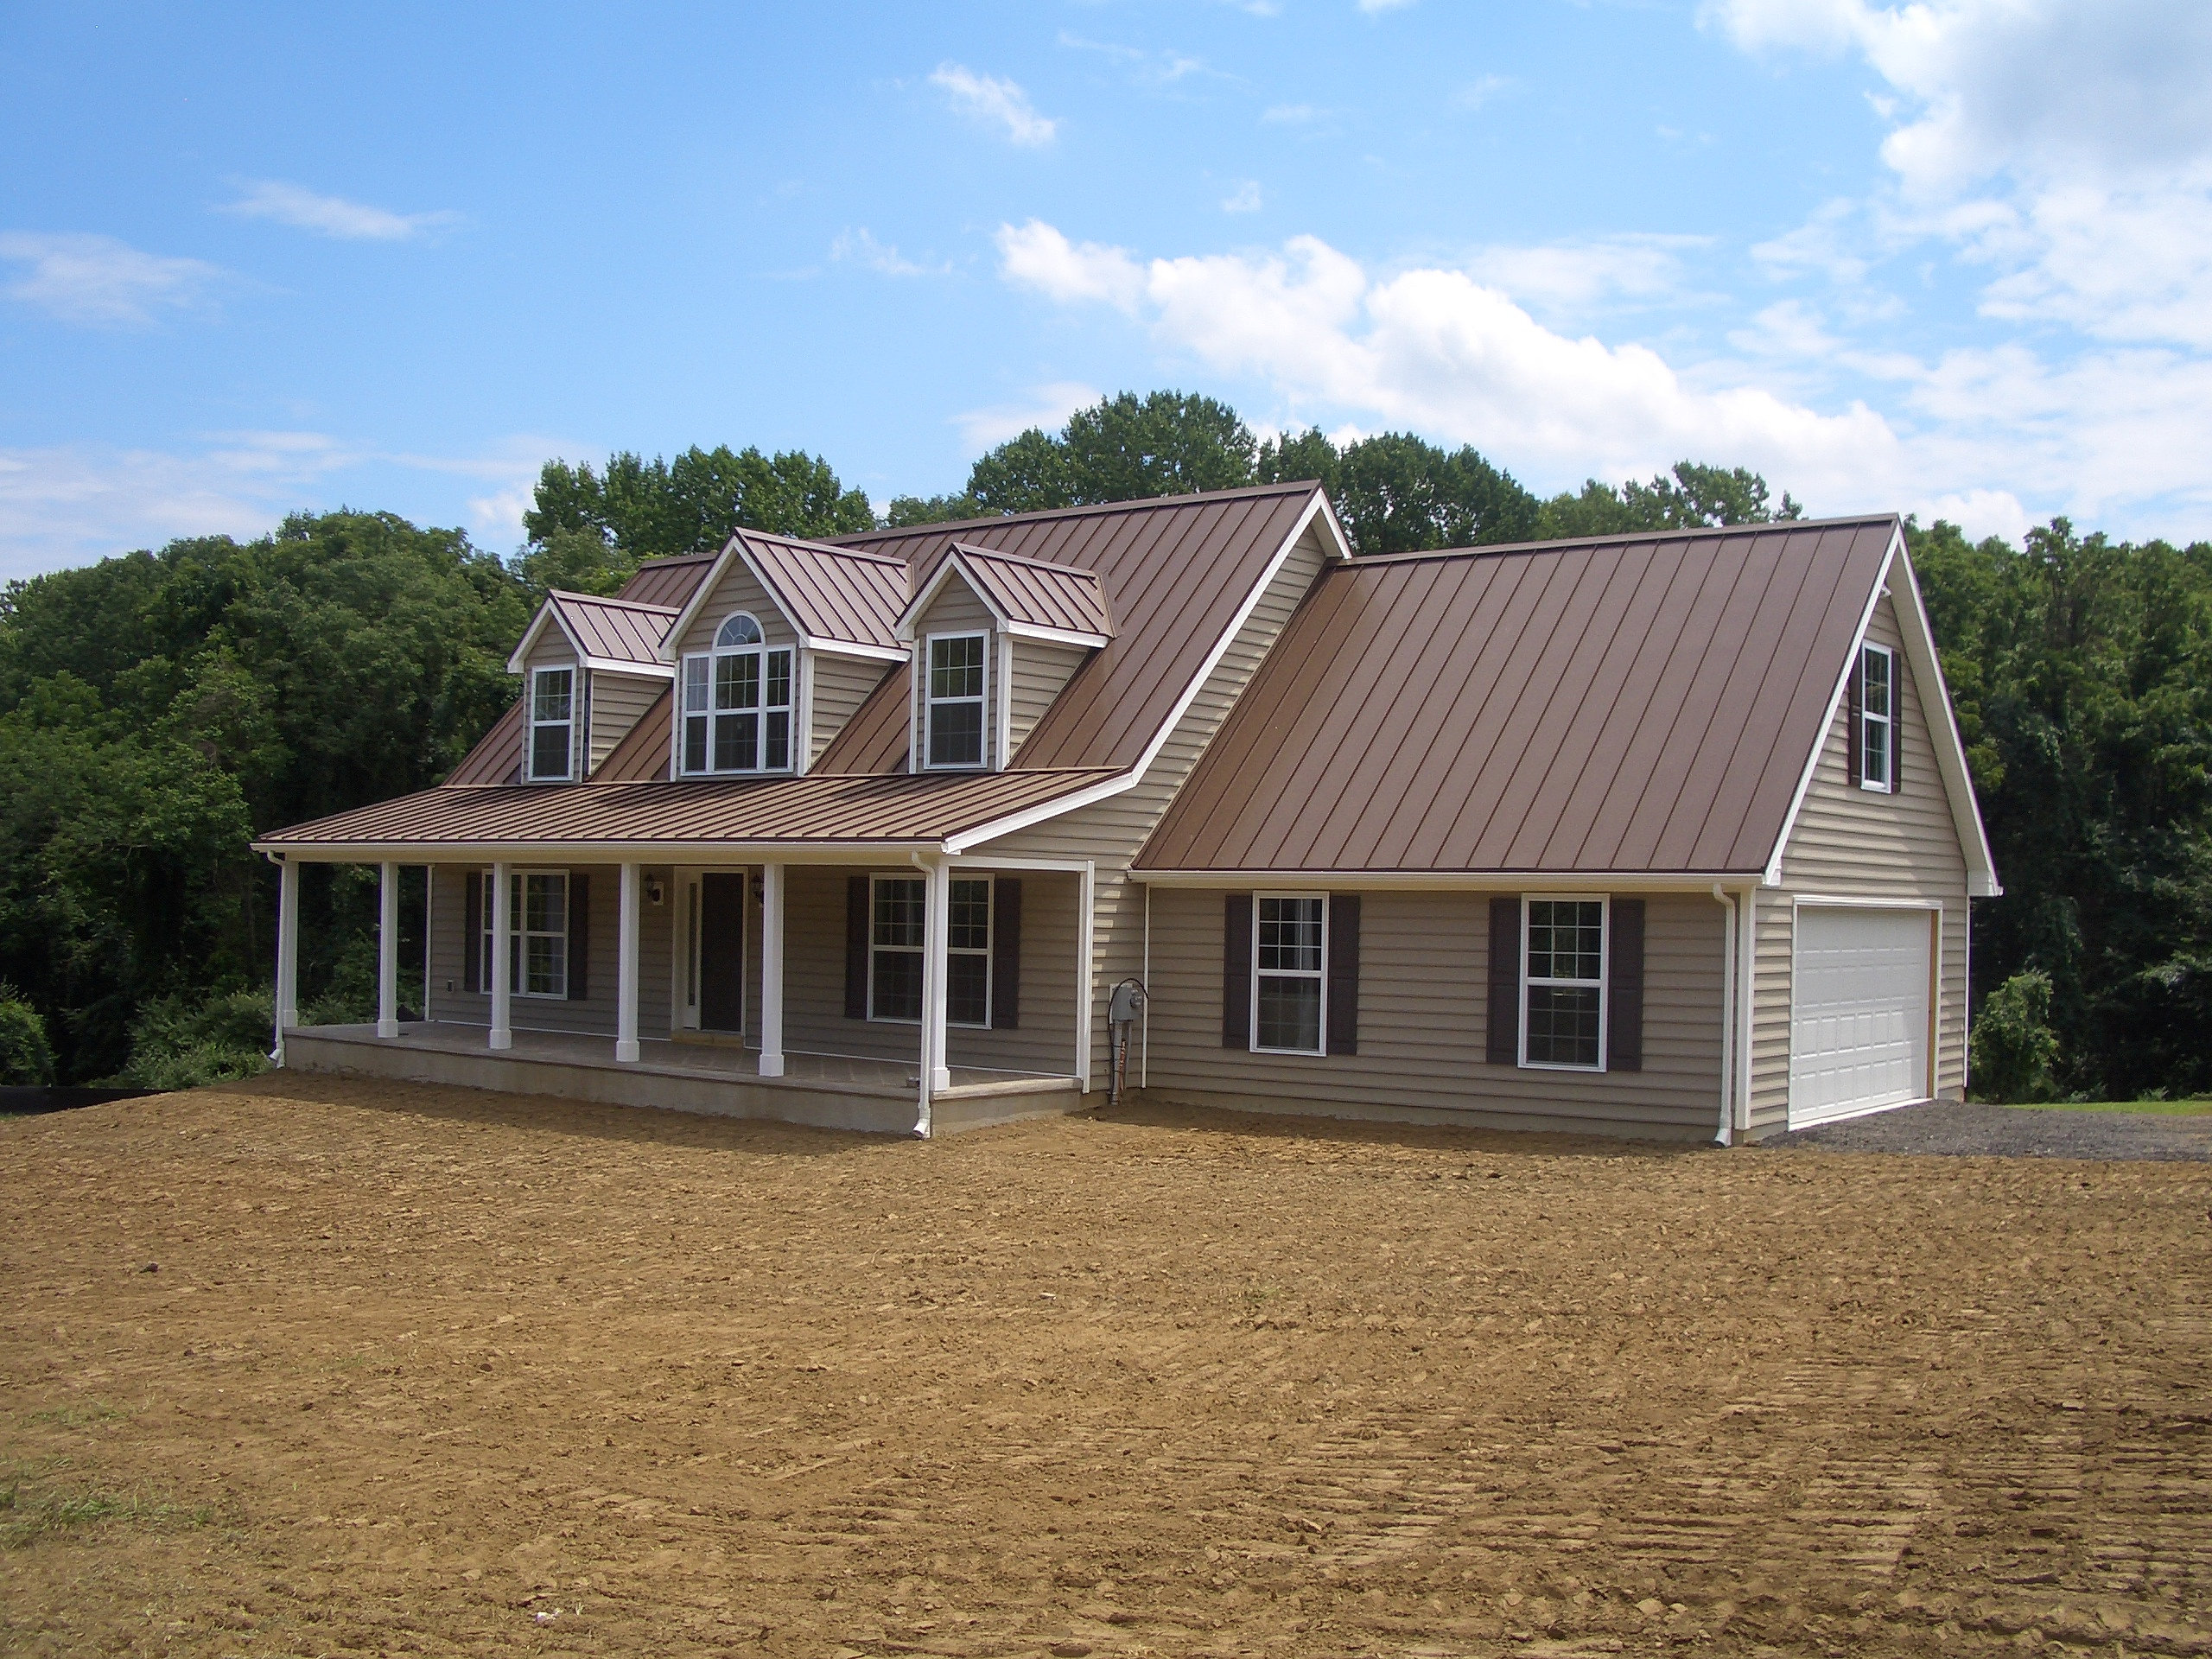 Ecodesigncenter certified green in chadds ford pa for House plans with tin roofs